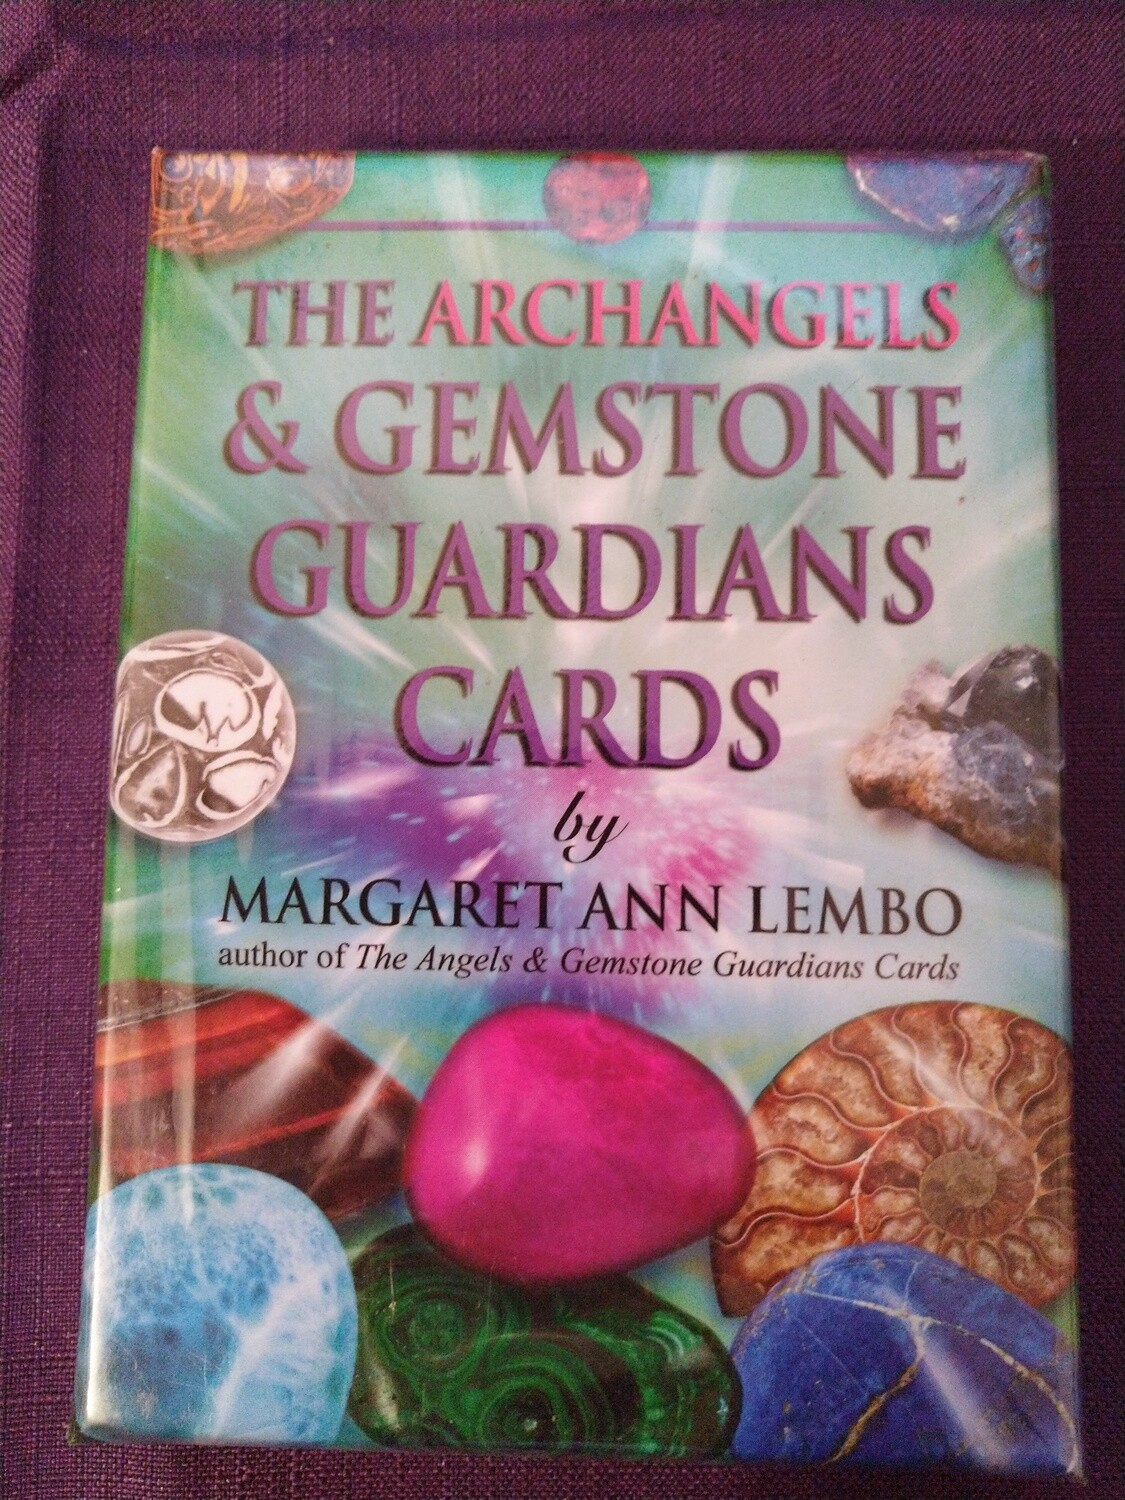 THE ARCHANGELS & GEMSTONE GUARDIANS CARDS BY MARGARET LEMBO